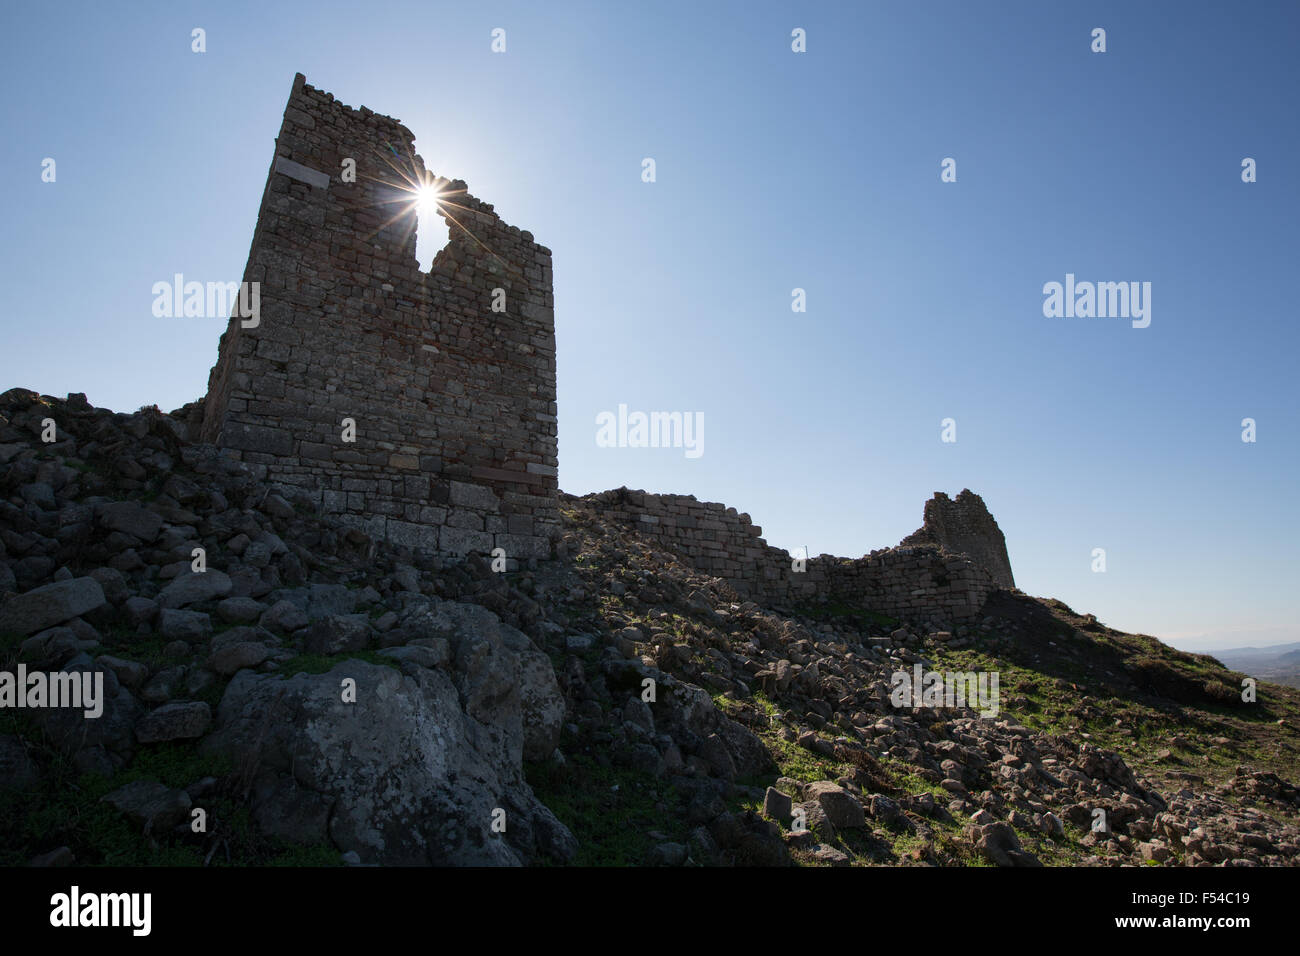 The UNESCO World Heritage Hellenistic Greco-Roman site of the Pergamon acropolis, near Bergama, in Izmir Province, - Stock Image